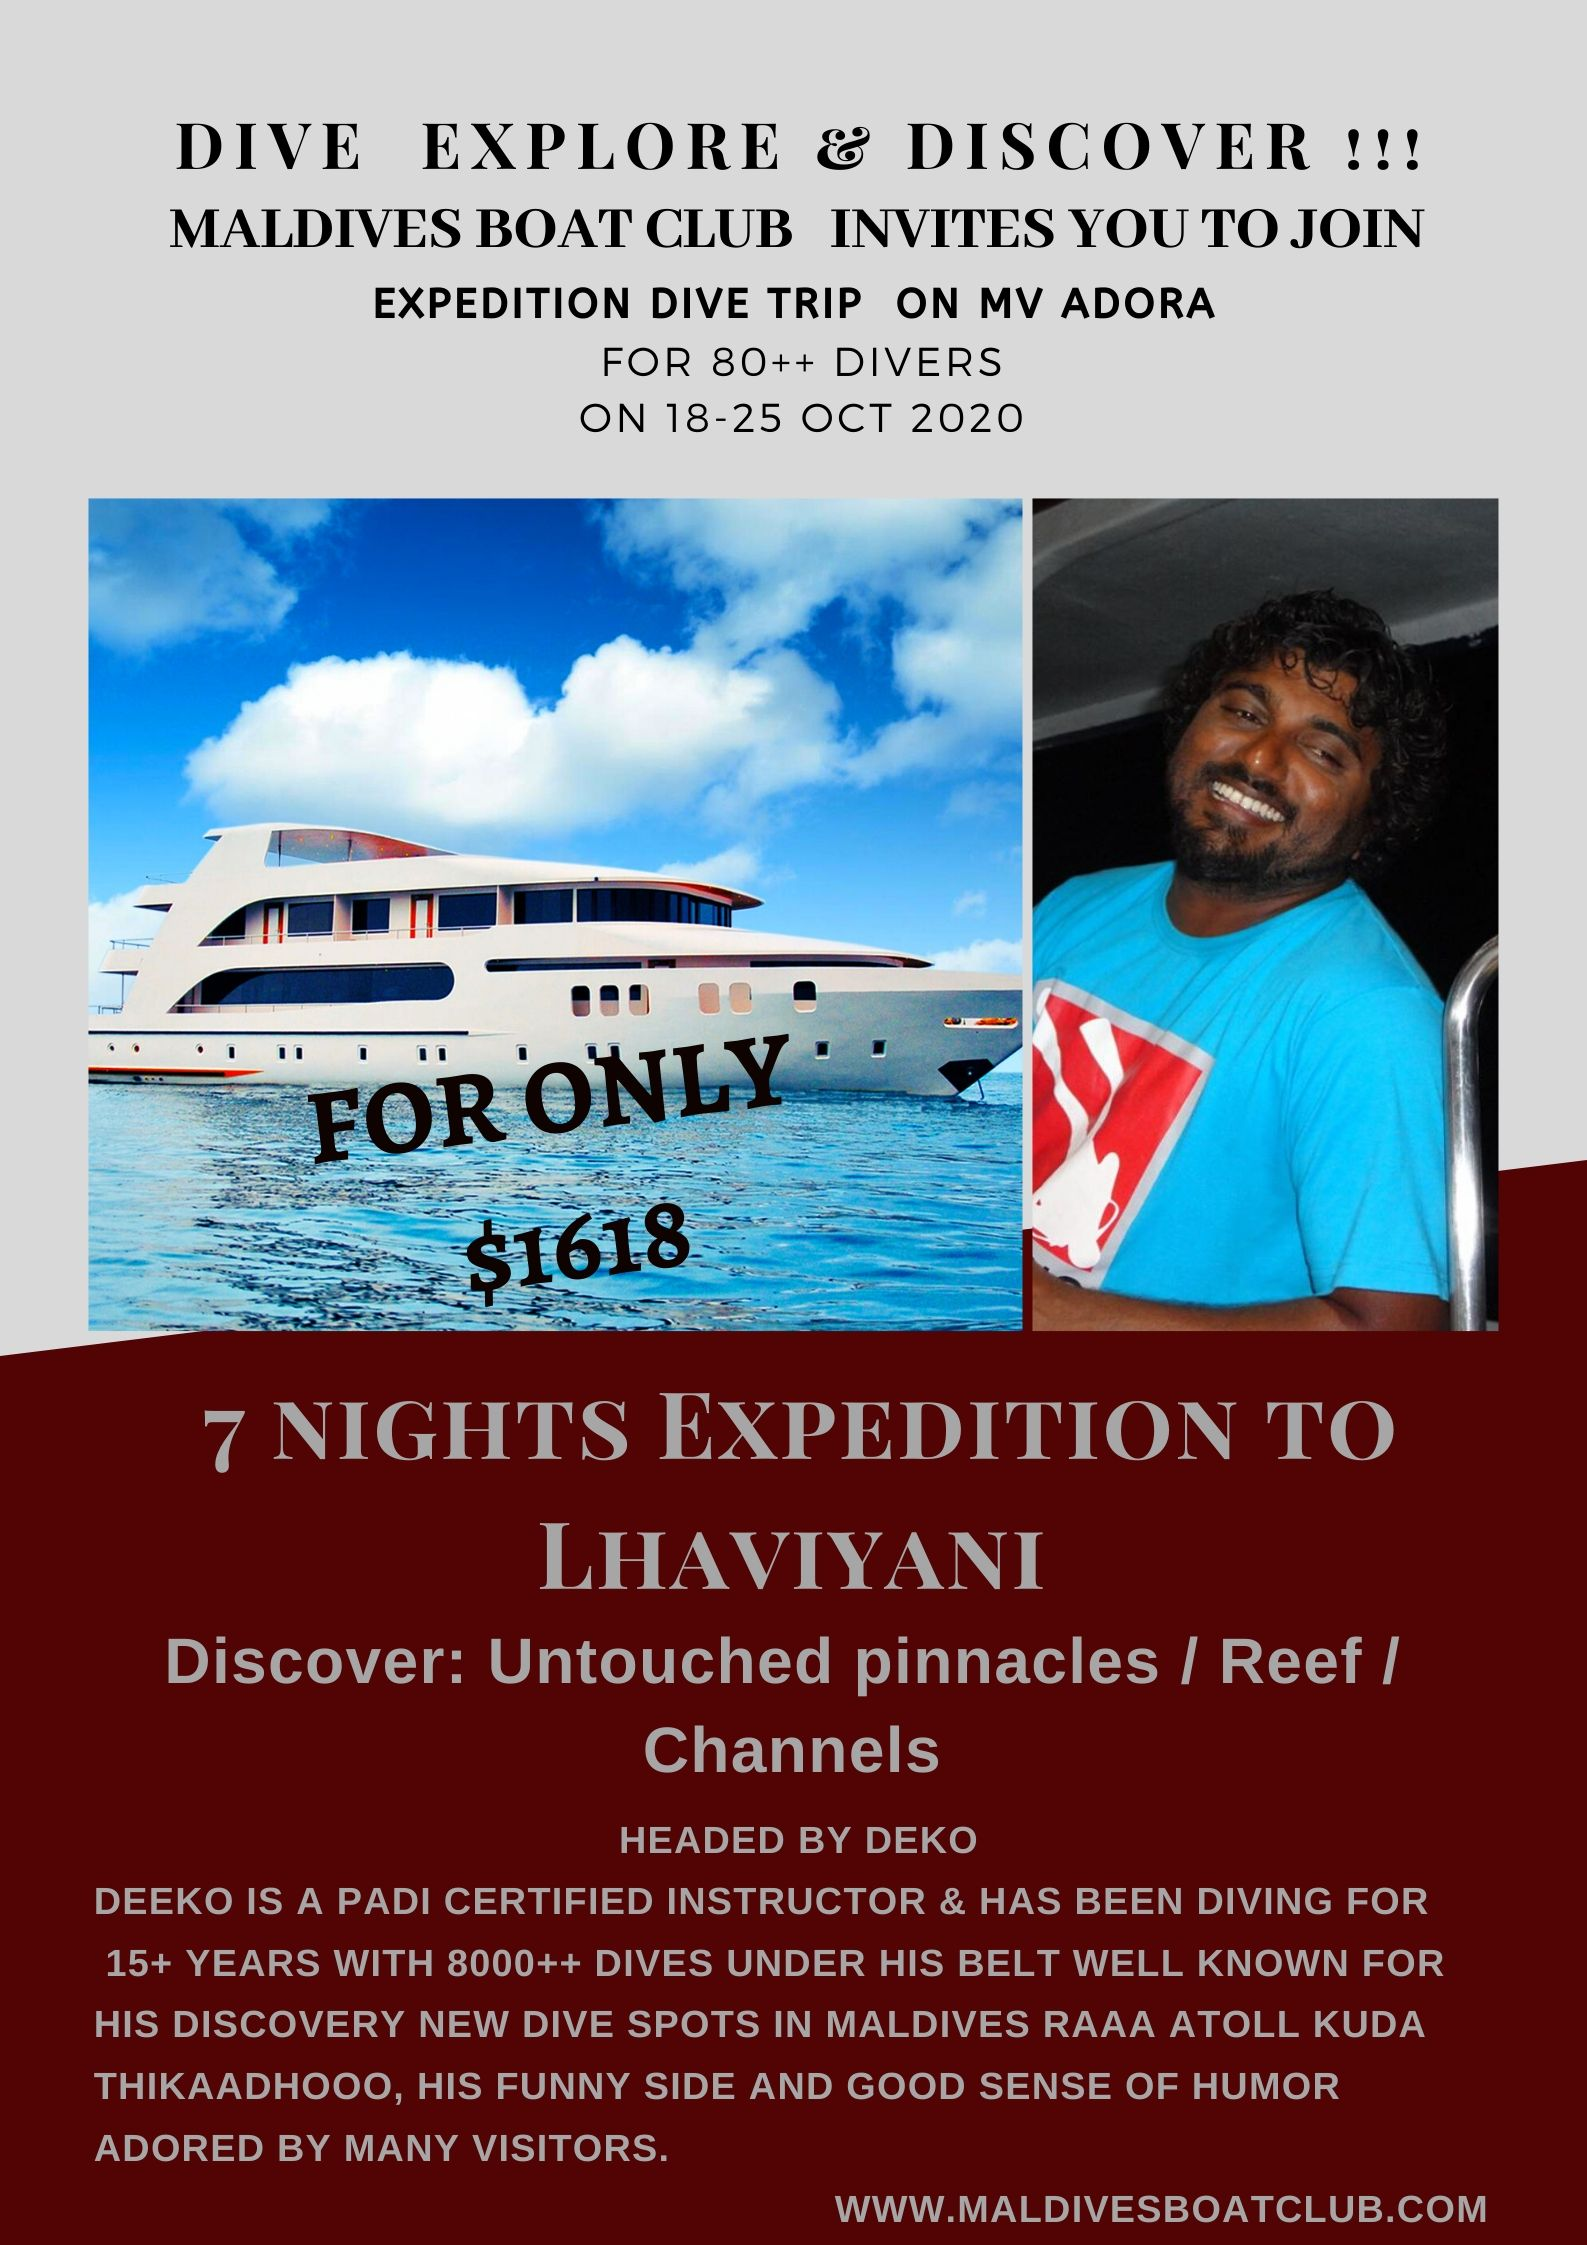 EXPEDITION TO LHAVIYANI